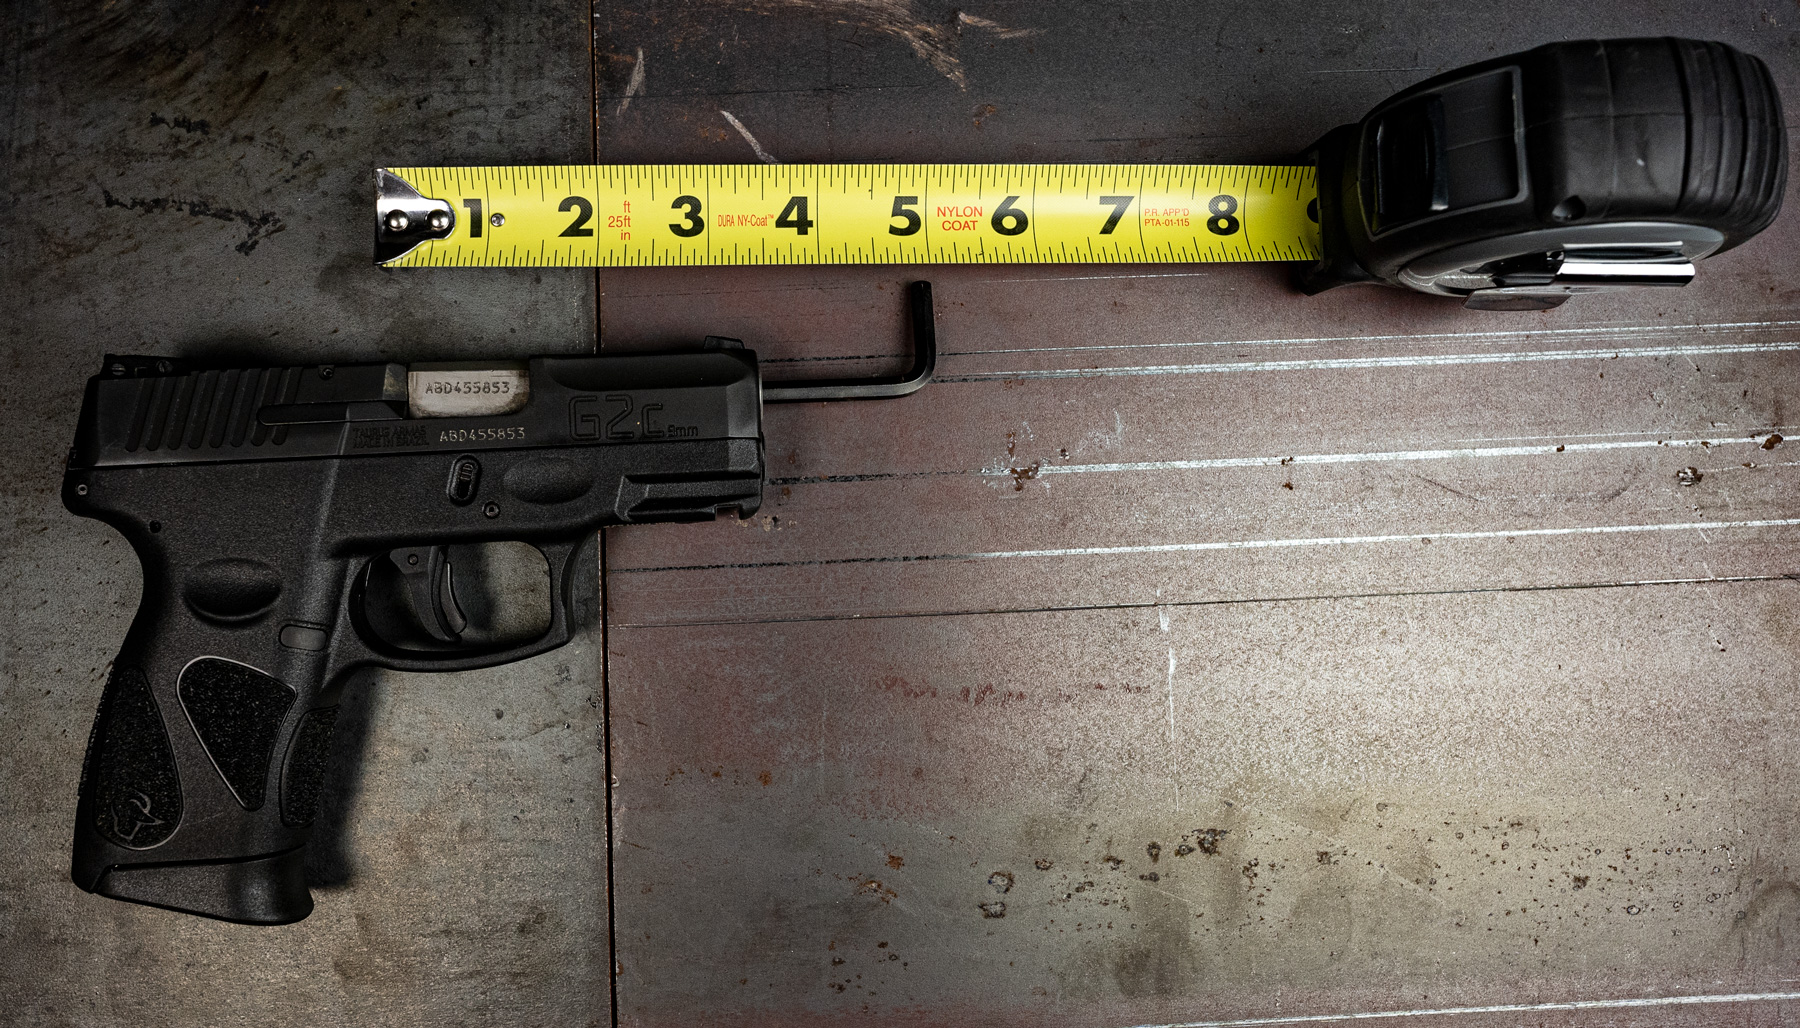 A dowel and tape measure showing how to measure the length of a barrel with a pistol on a table